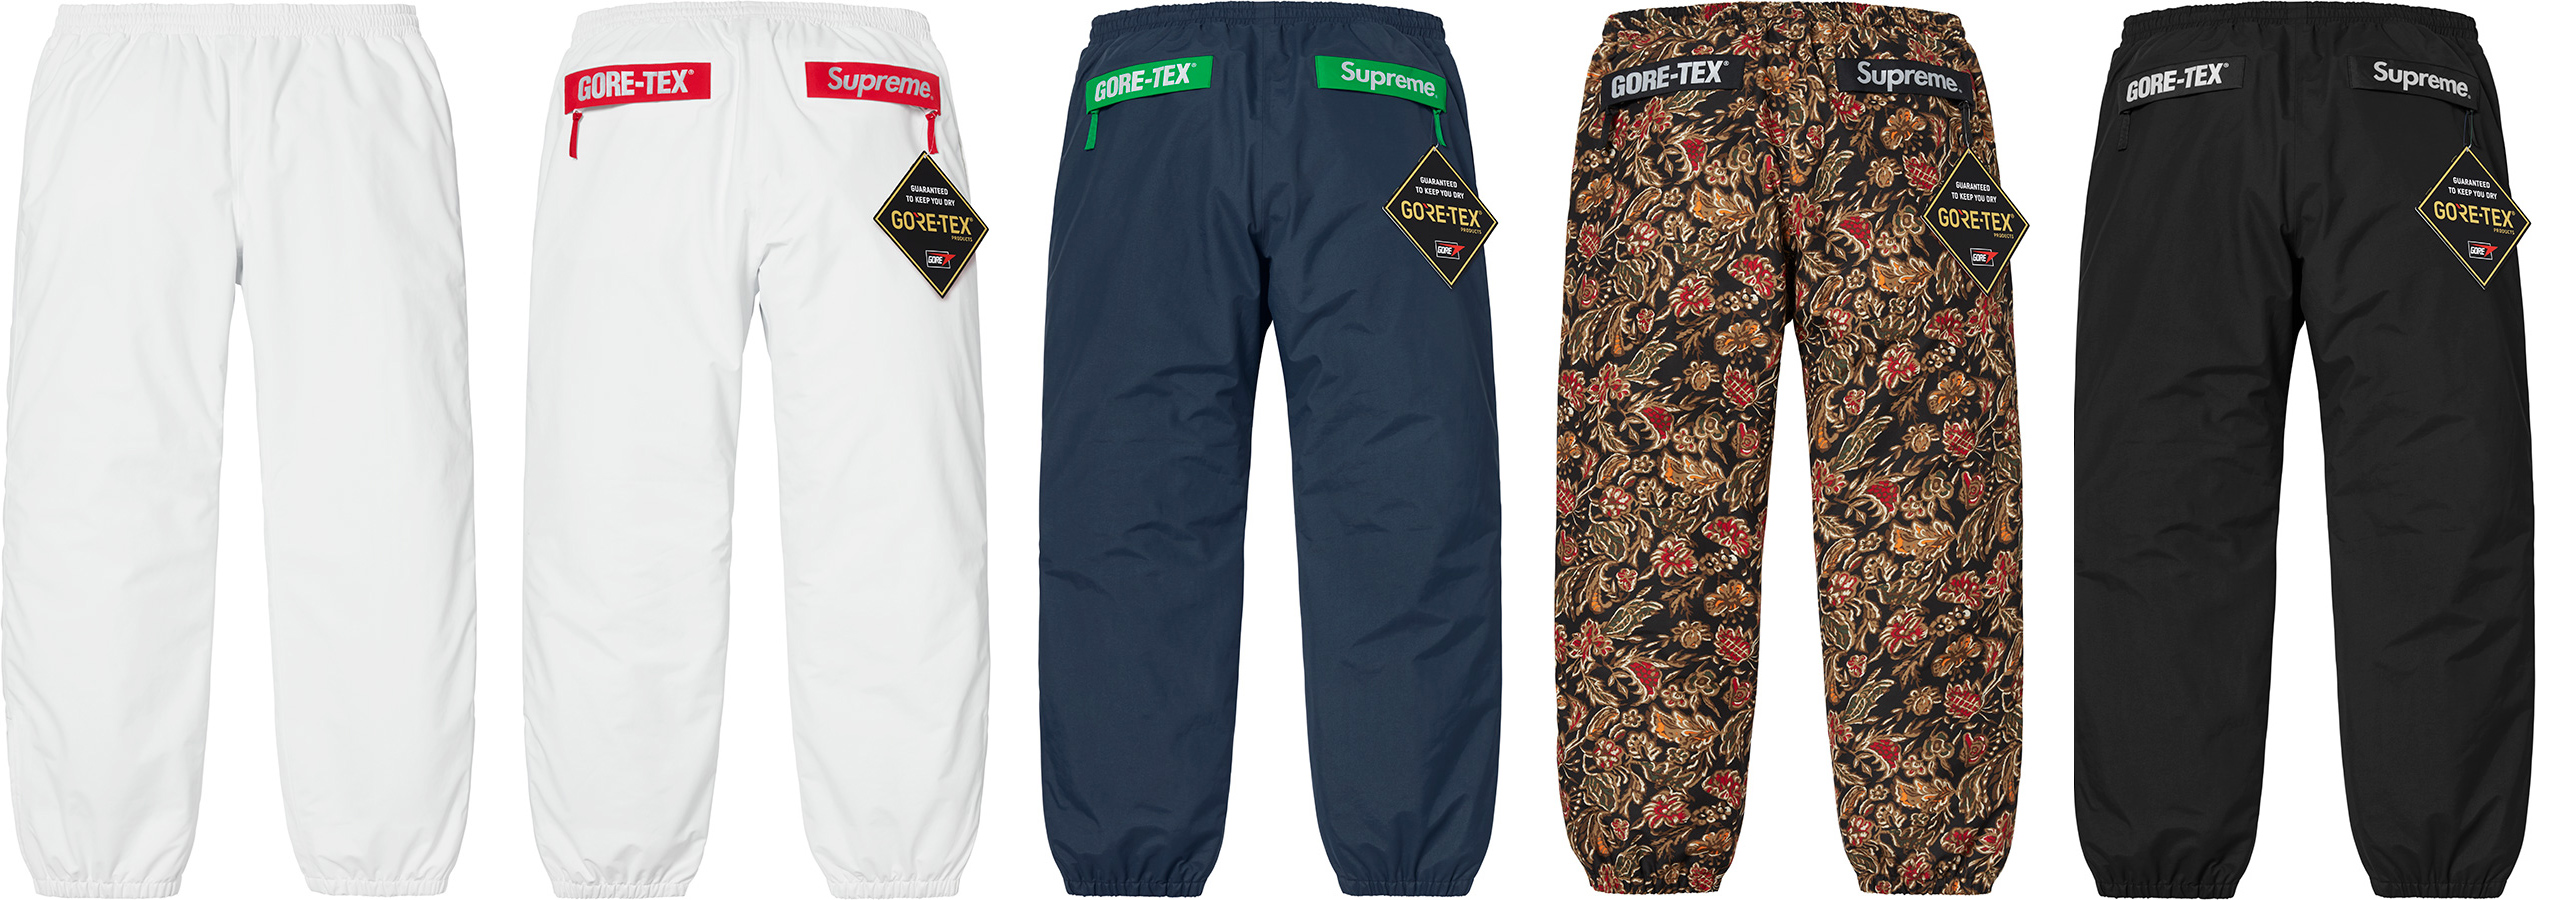 supreme-18aw-fall-winter-gore-tex-pant